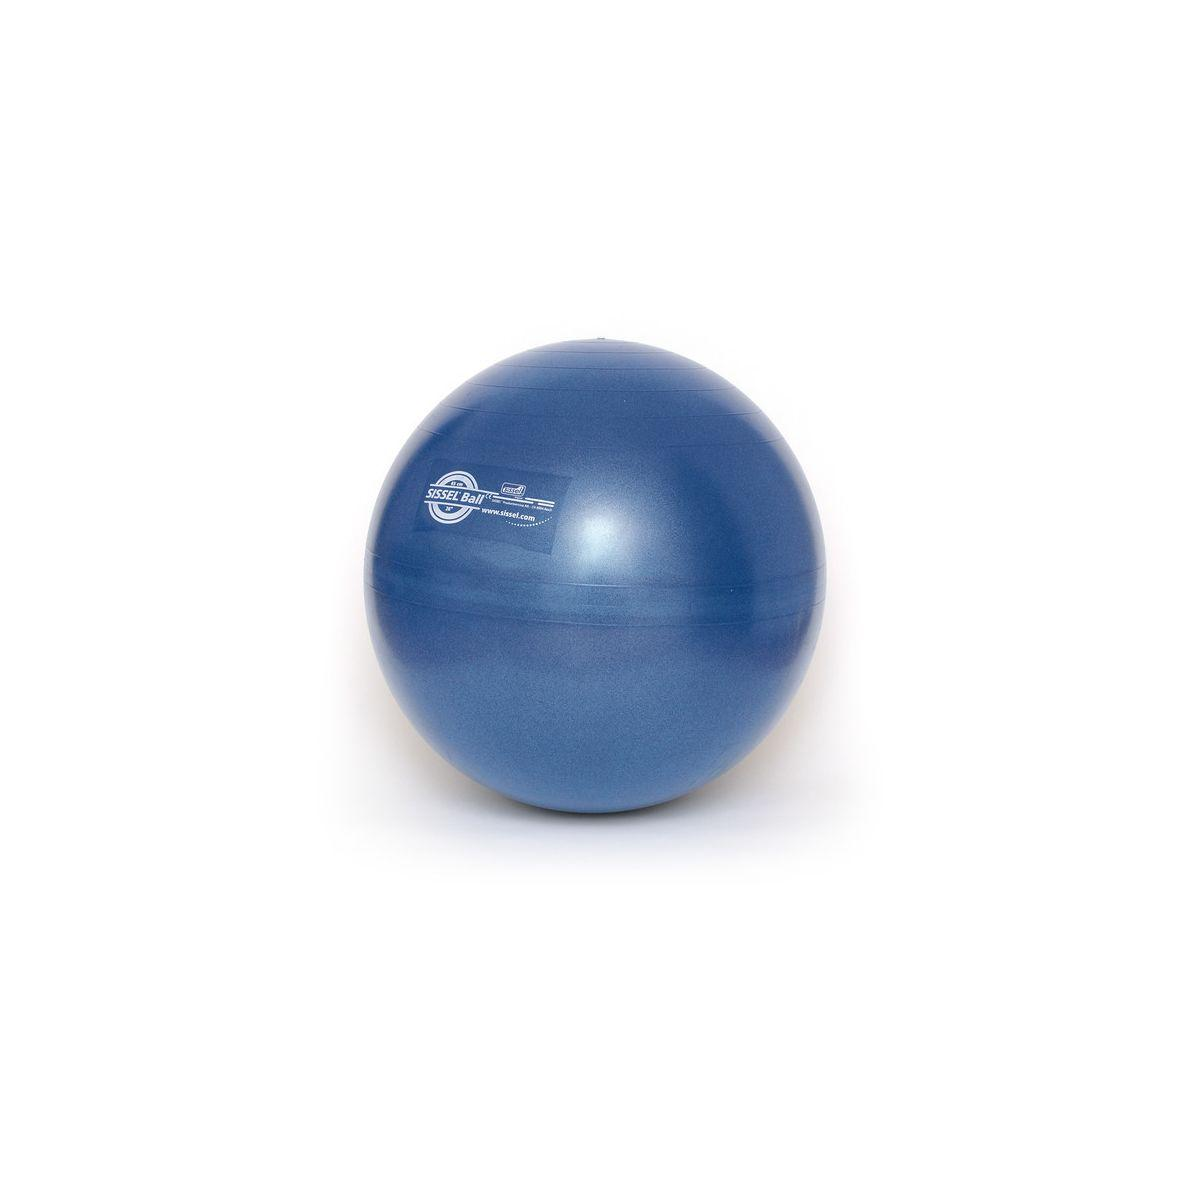 Ballon sissel ball 65cm (photo)